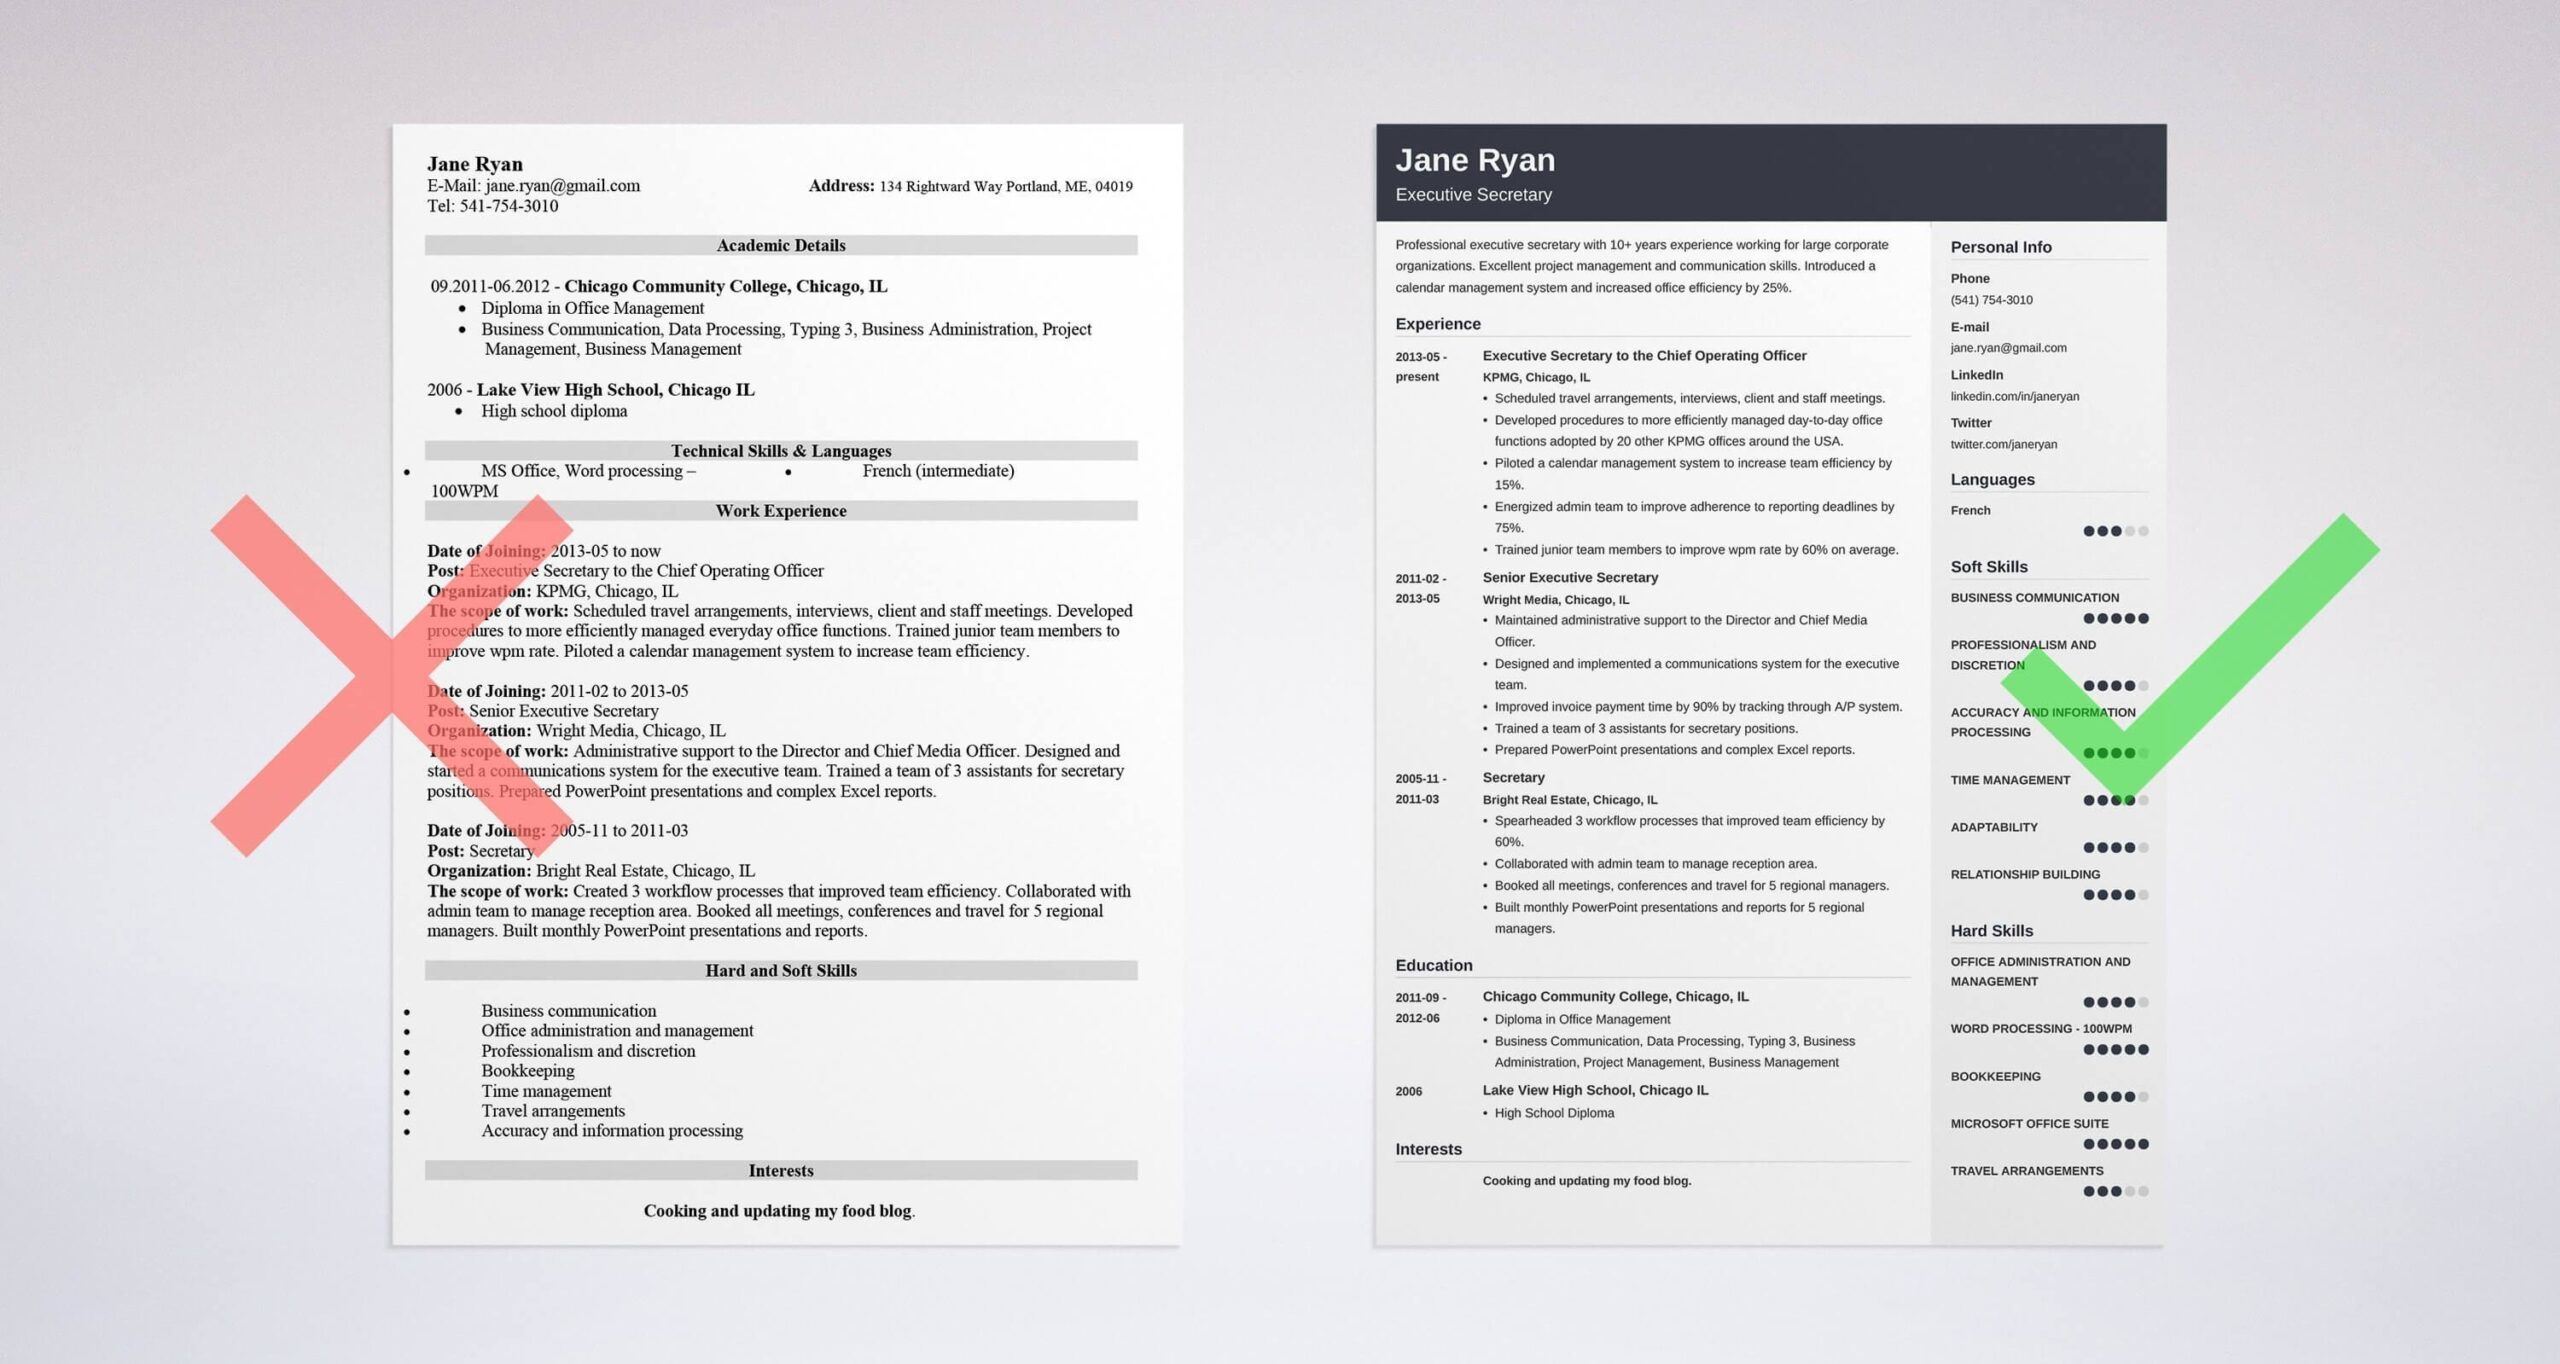 secretary resume examples of skills duties objectives sample for school position samples Resume Sample Resume For School Secretary Position